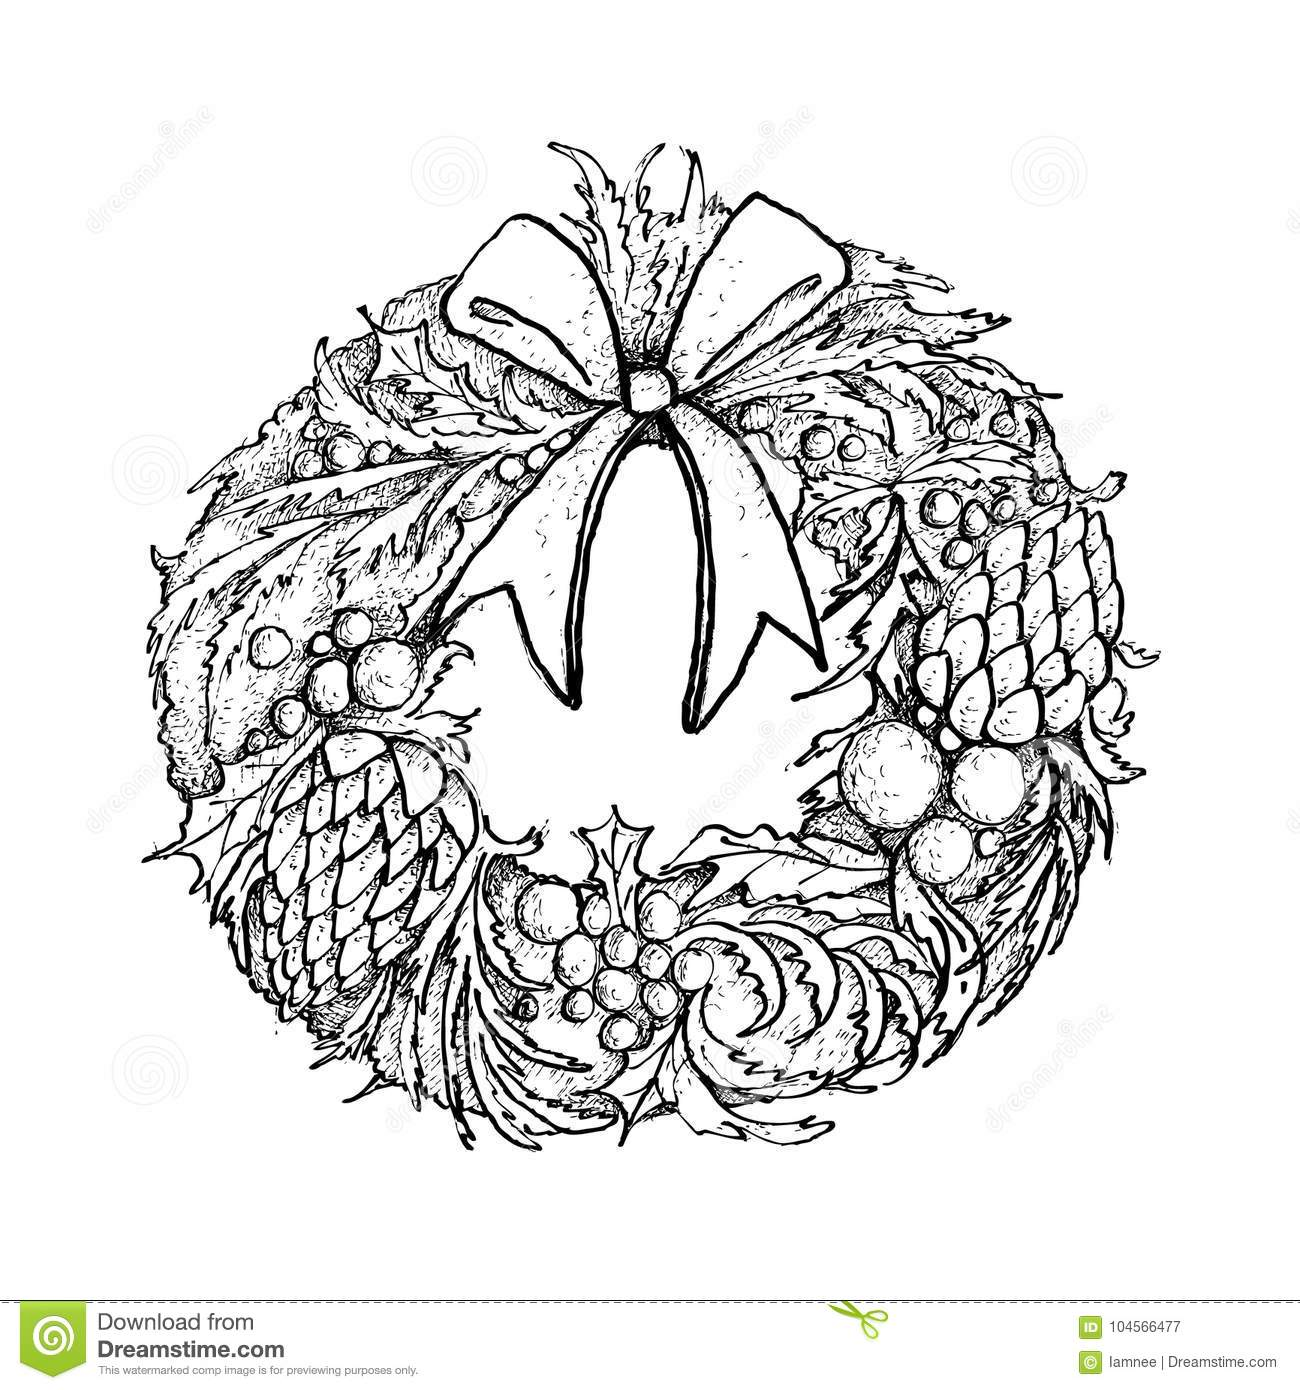 Drawings Of Christmas Wreaths.Hand Drawn Of Christmas Wreath With Decorations Stock Vector